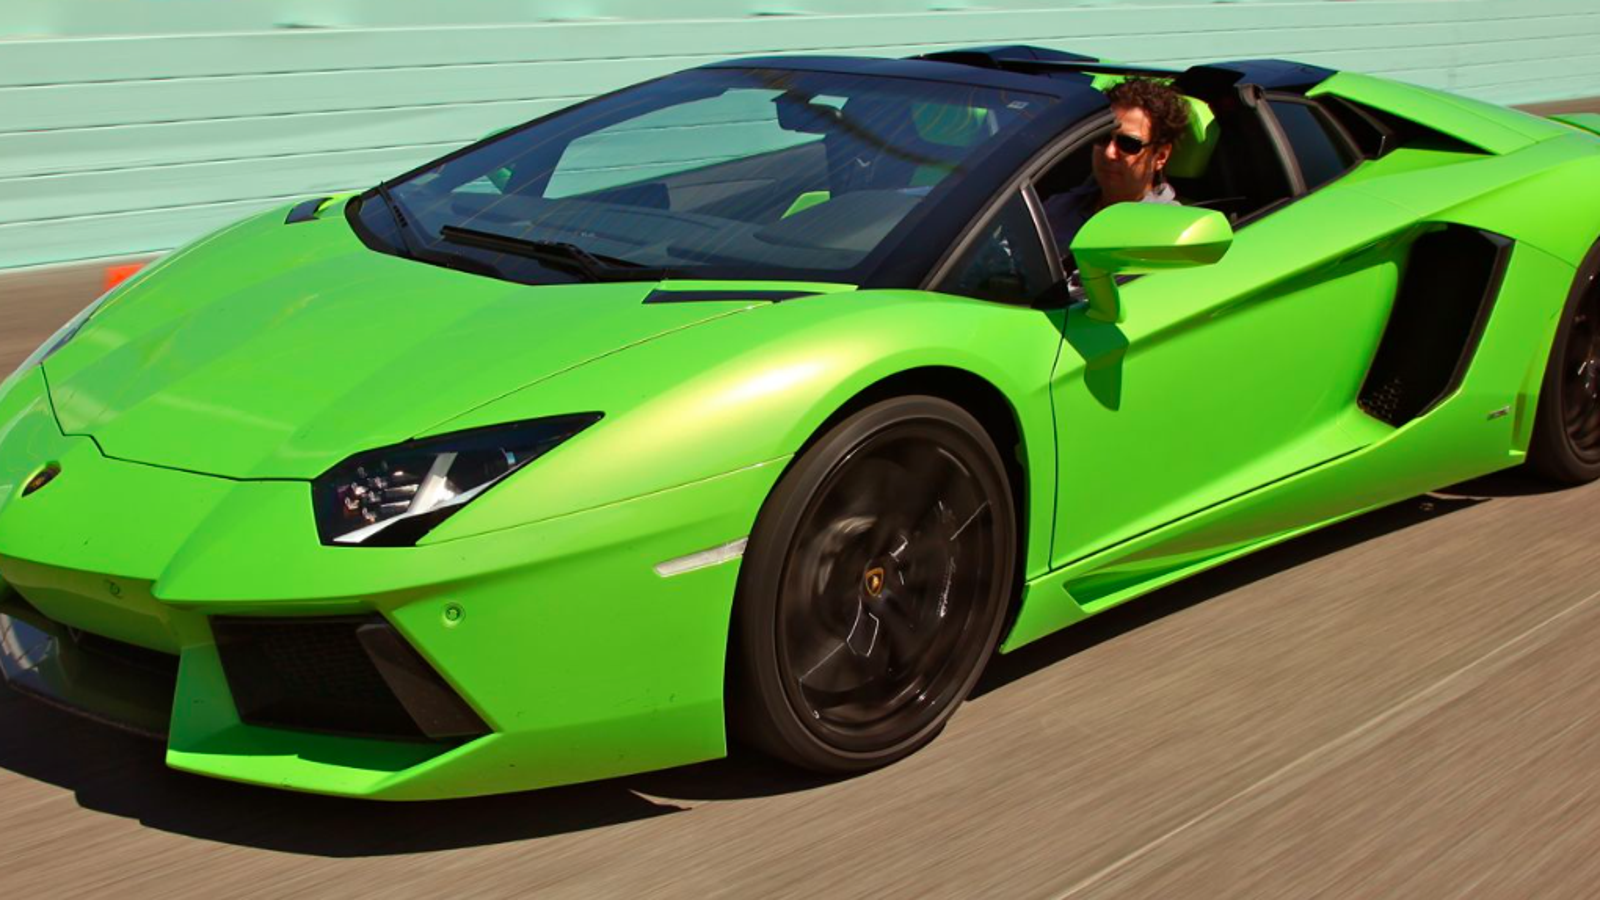 The Ten Best Cars To Make Your Ex Jealous